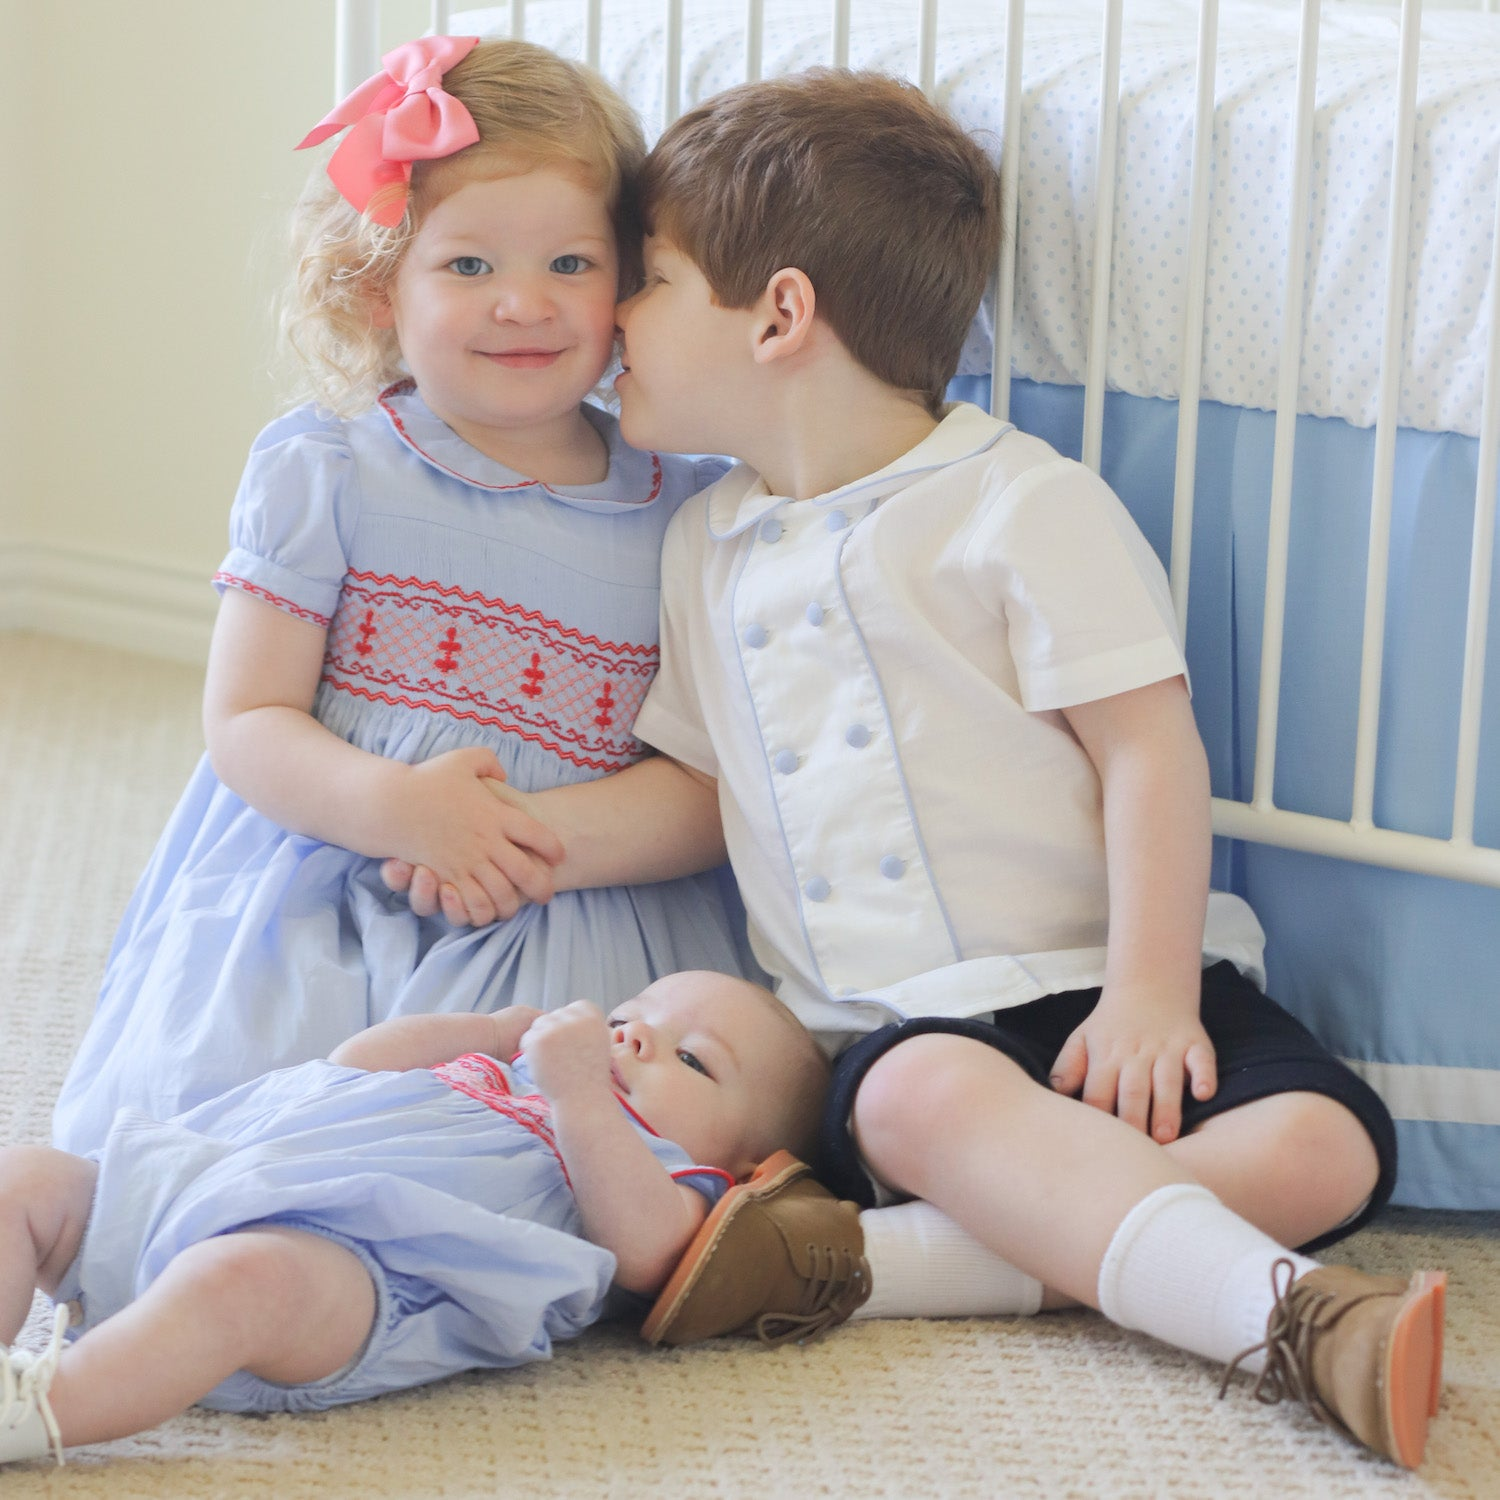 Royal family inspired matching sibling outfits